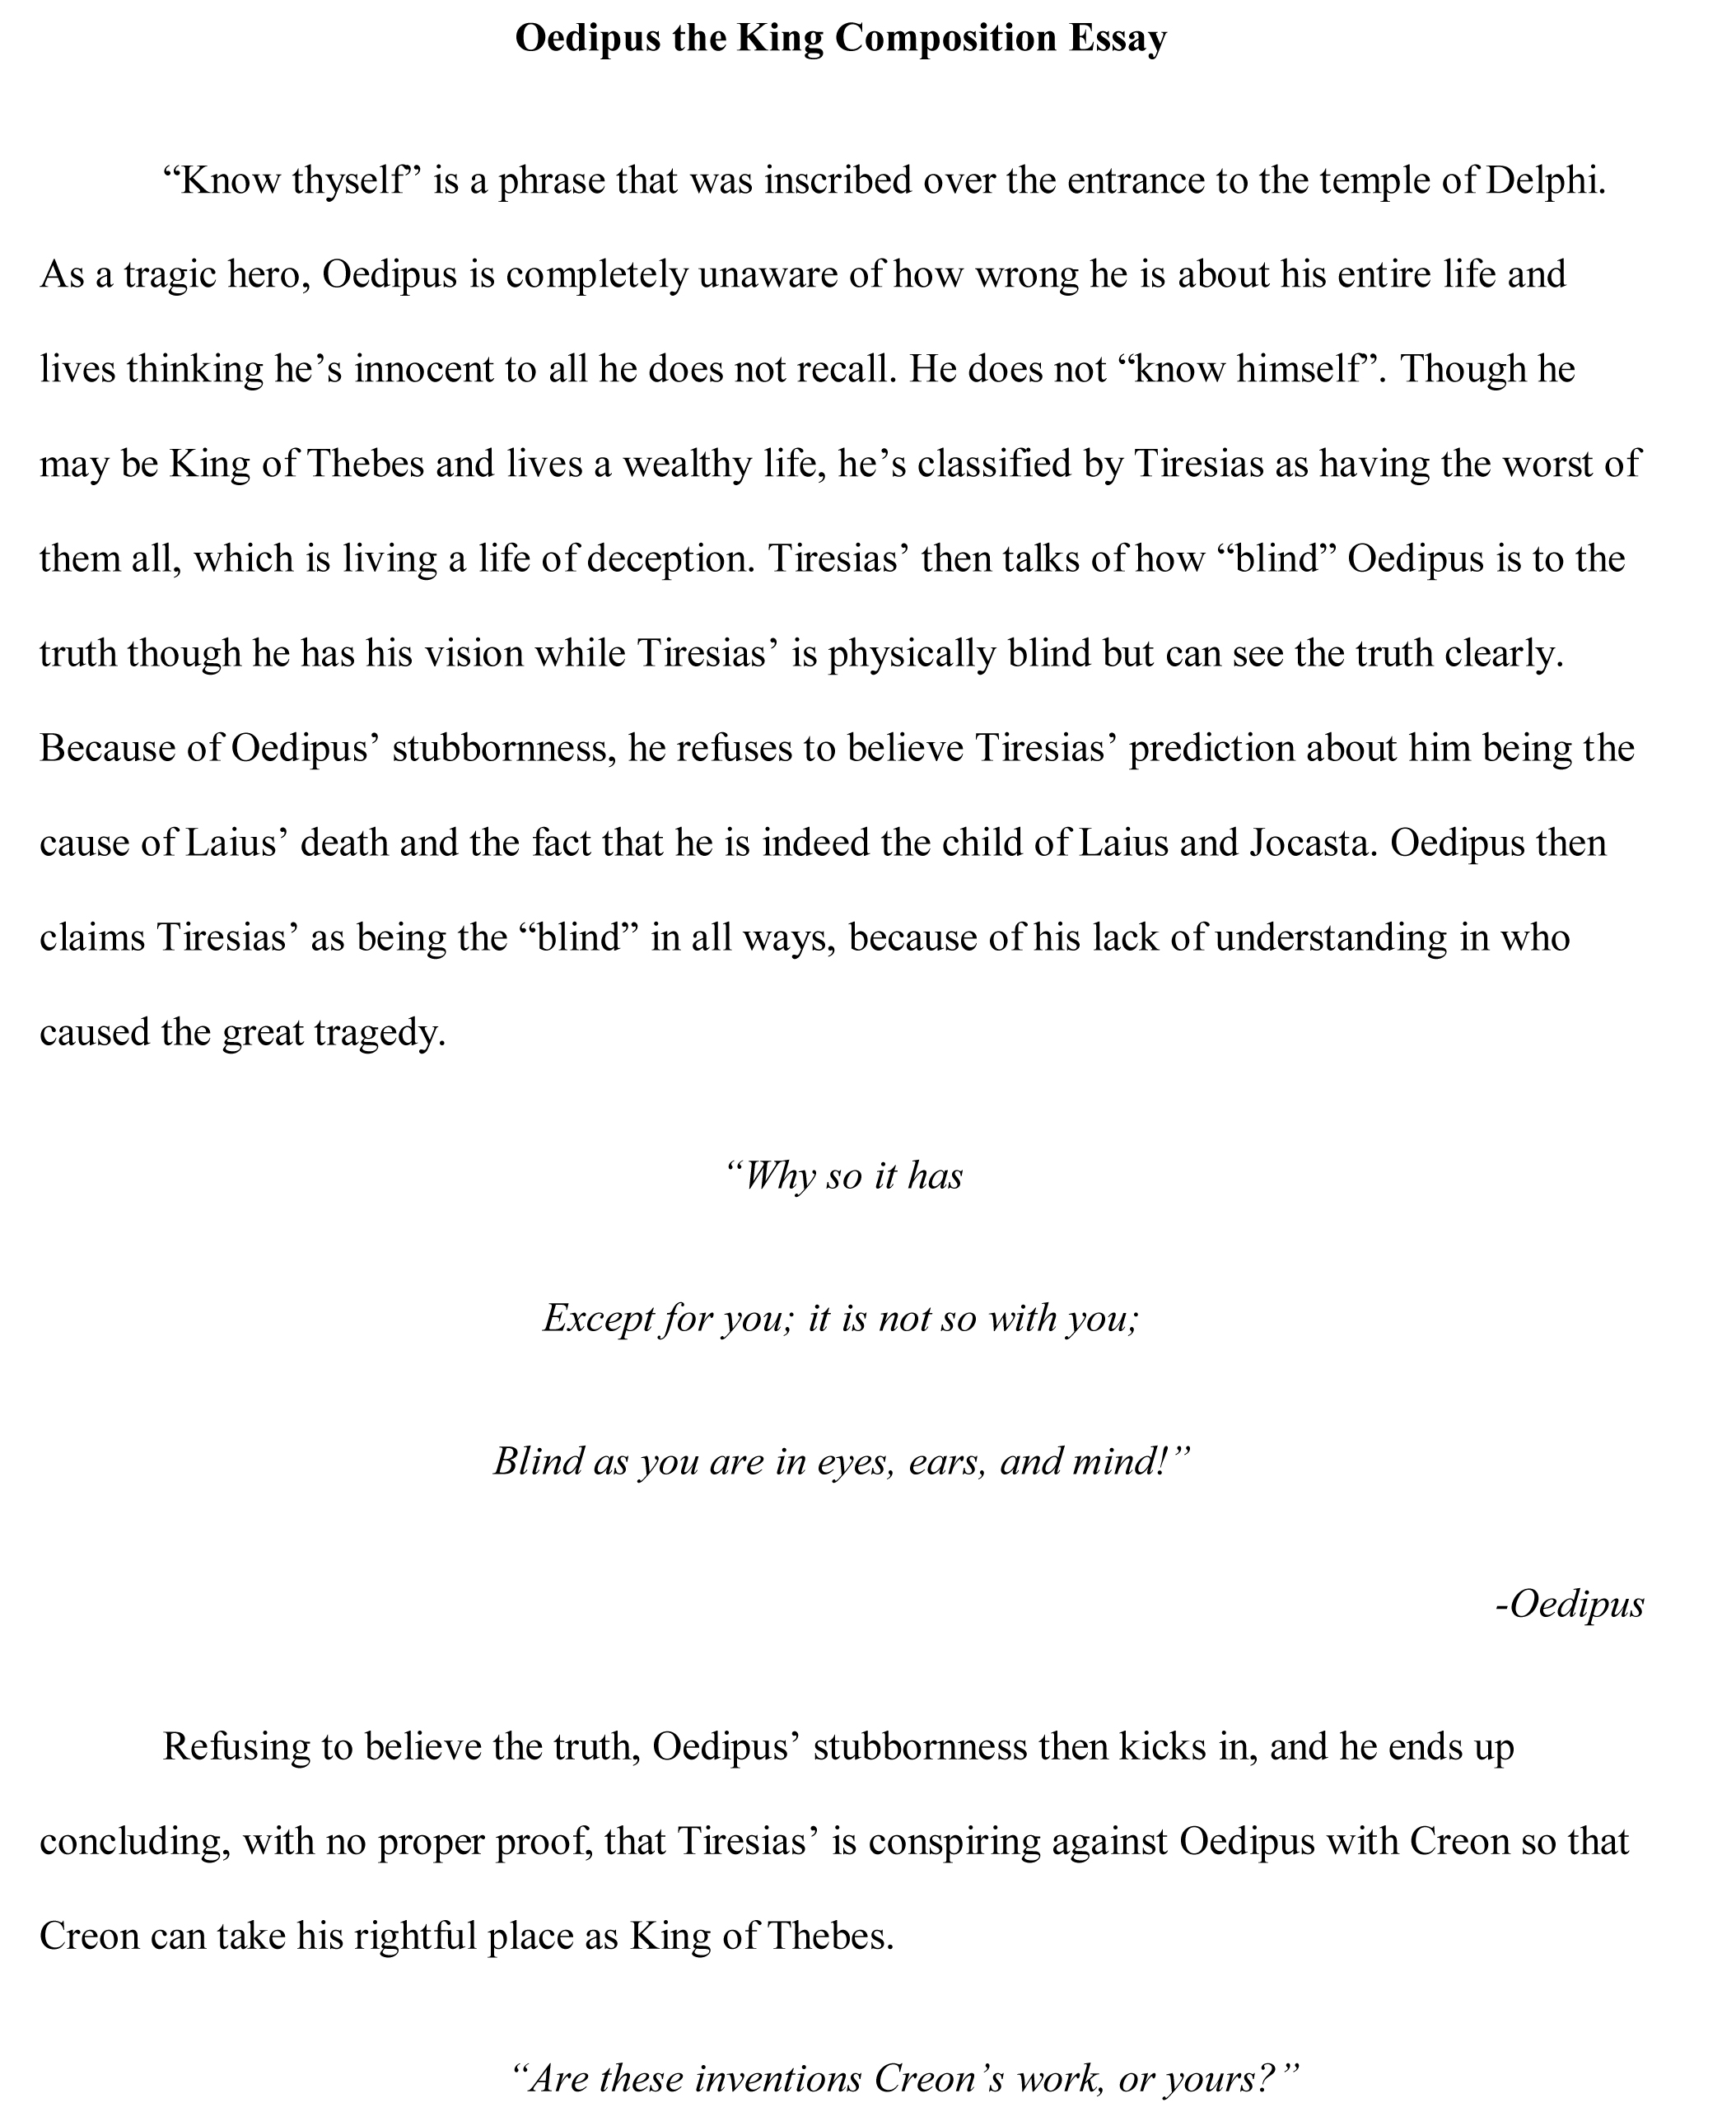 002 Best Essay Topics Example Oedipus Free Surprising Composition For High School Students College Job Interview Full